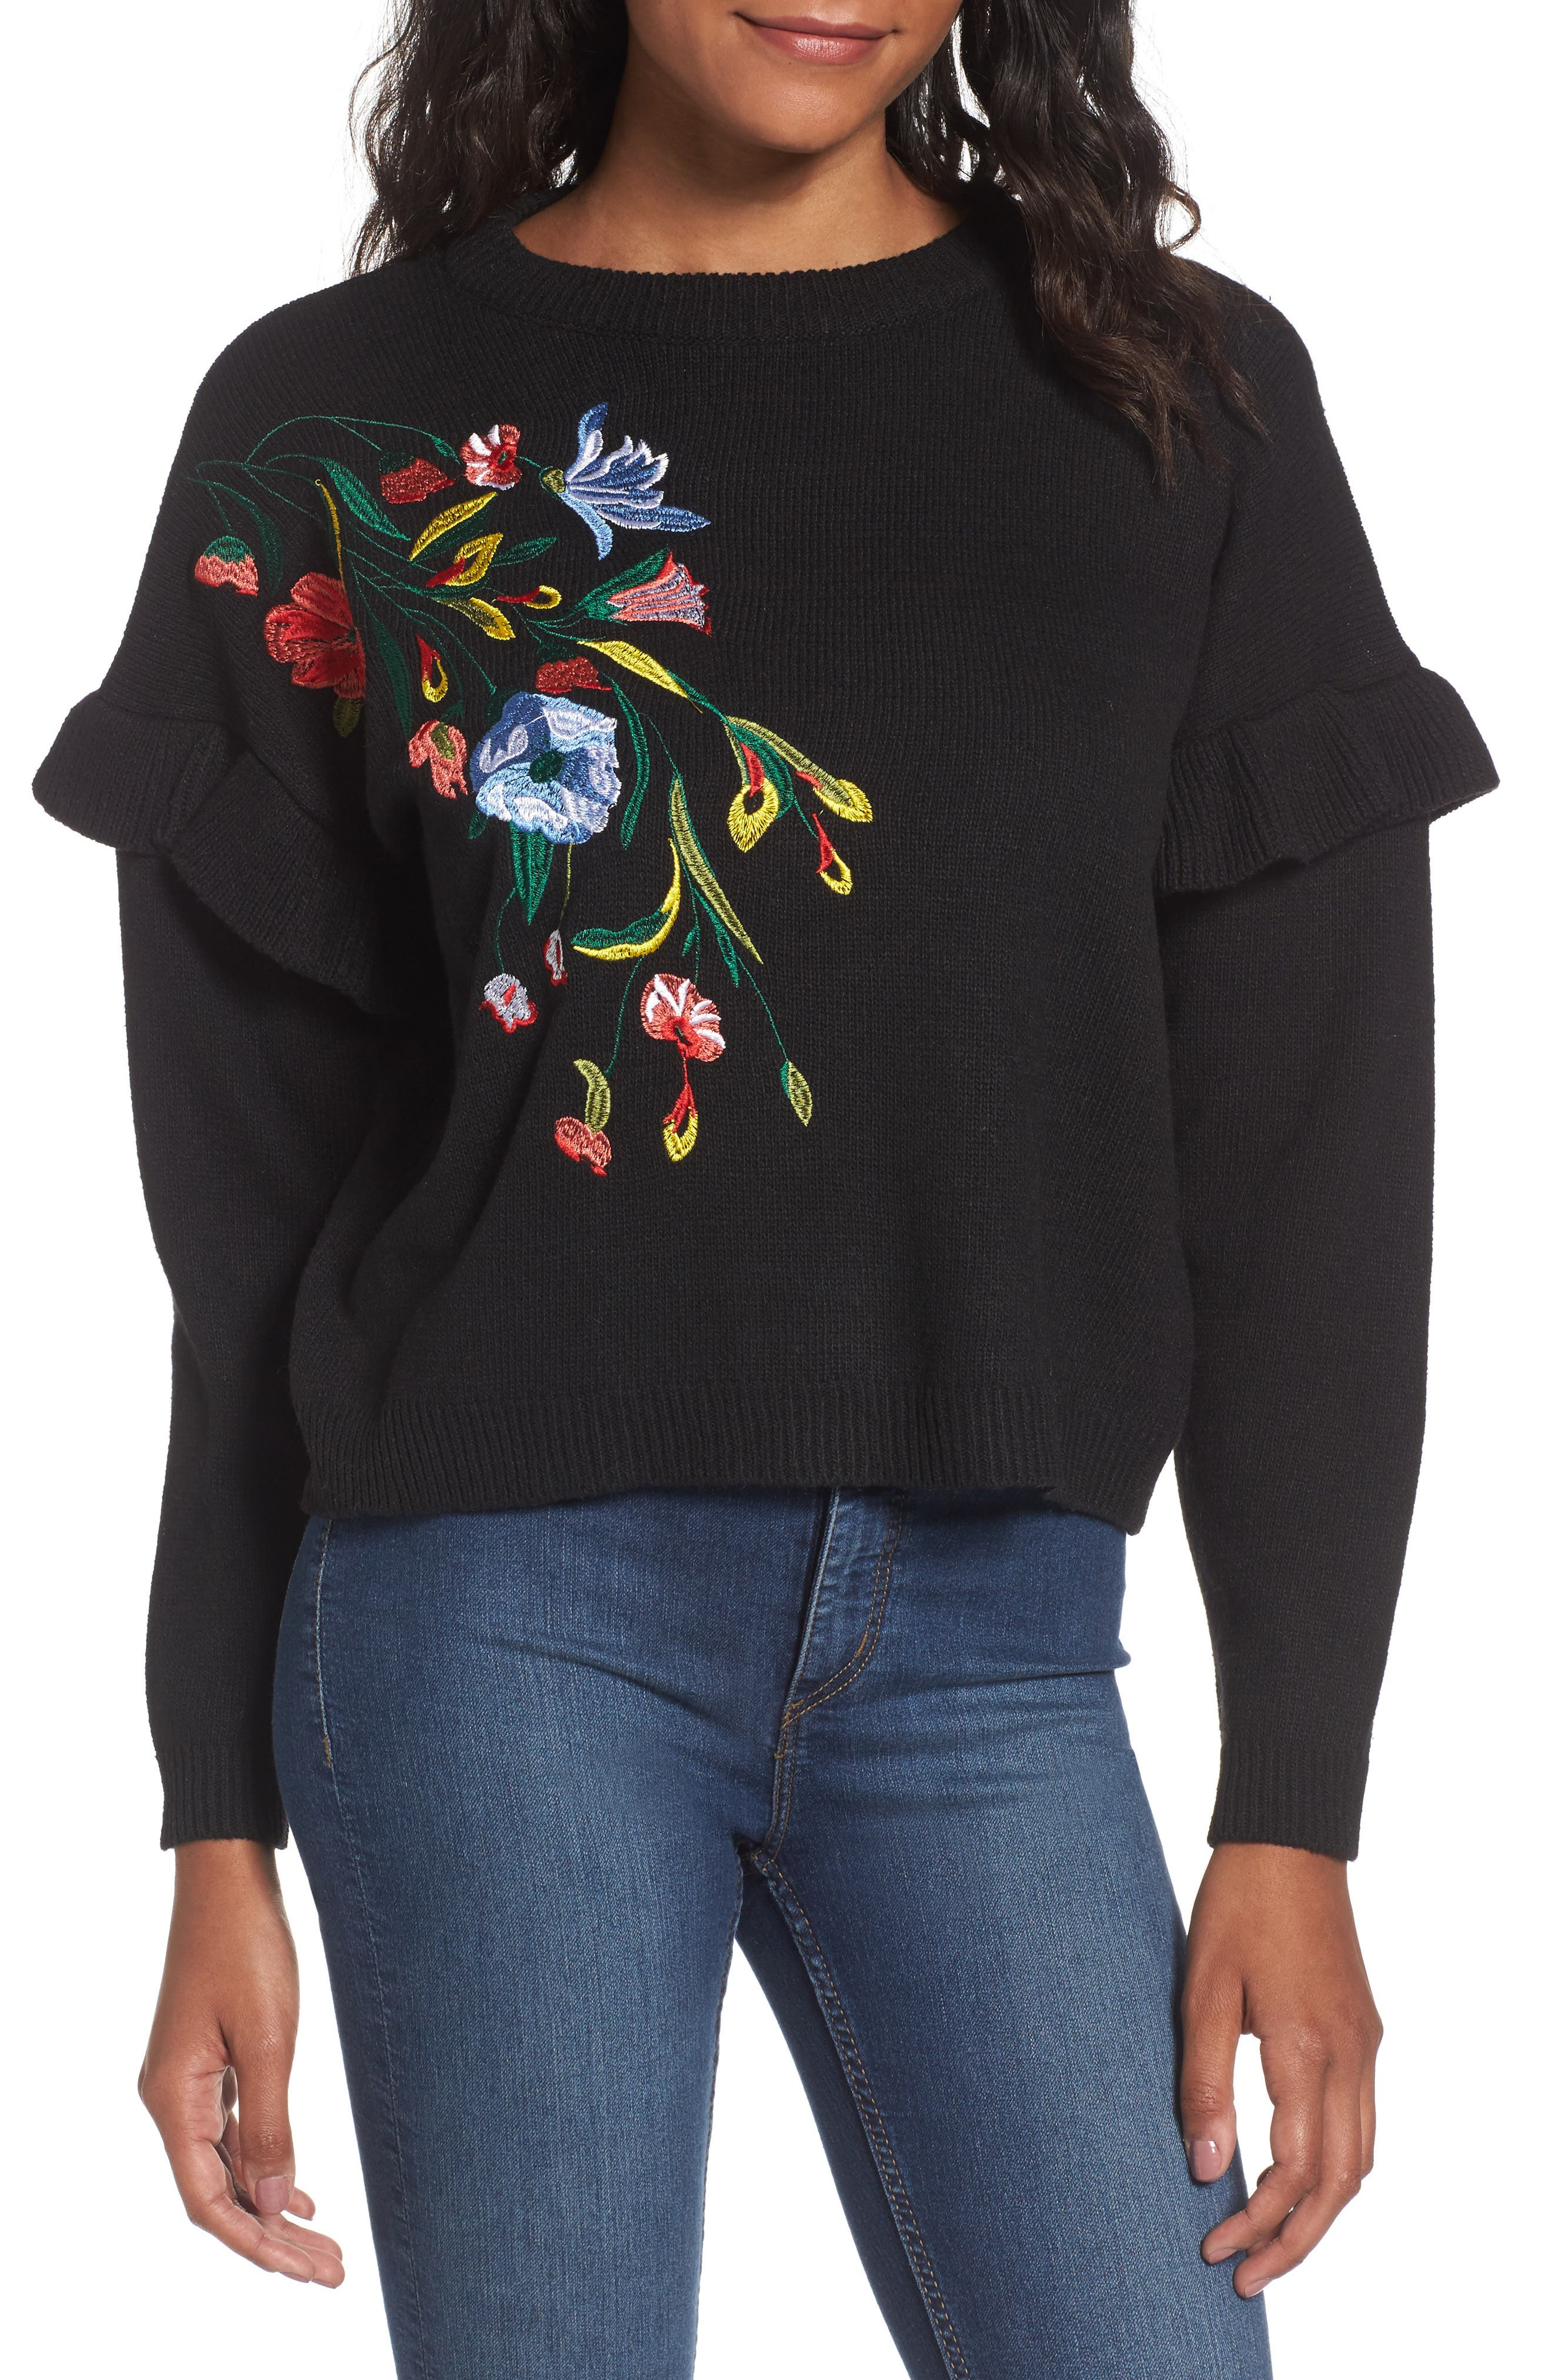 Main Image - Woven Heart Ruffle Sleeve Embroidered Sweater